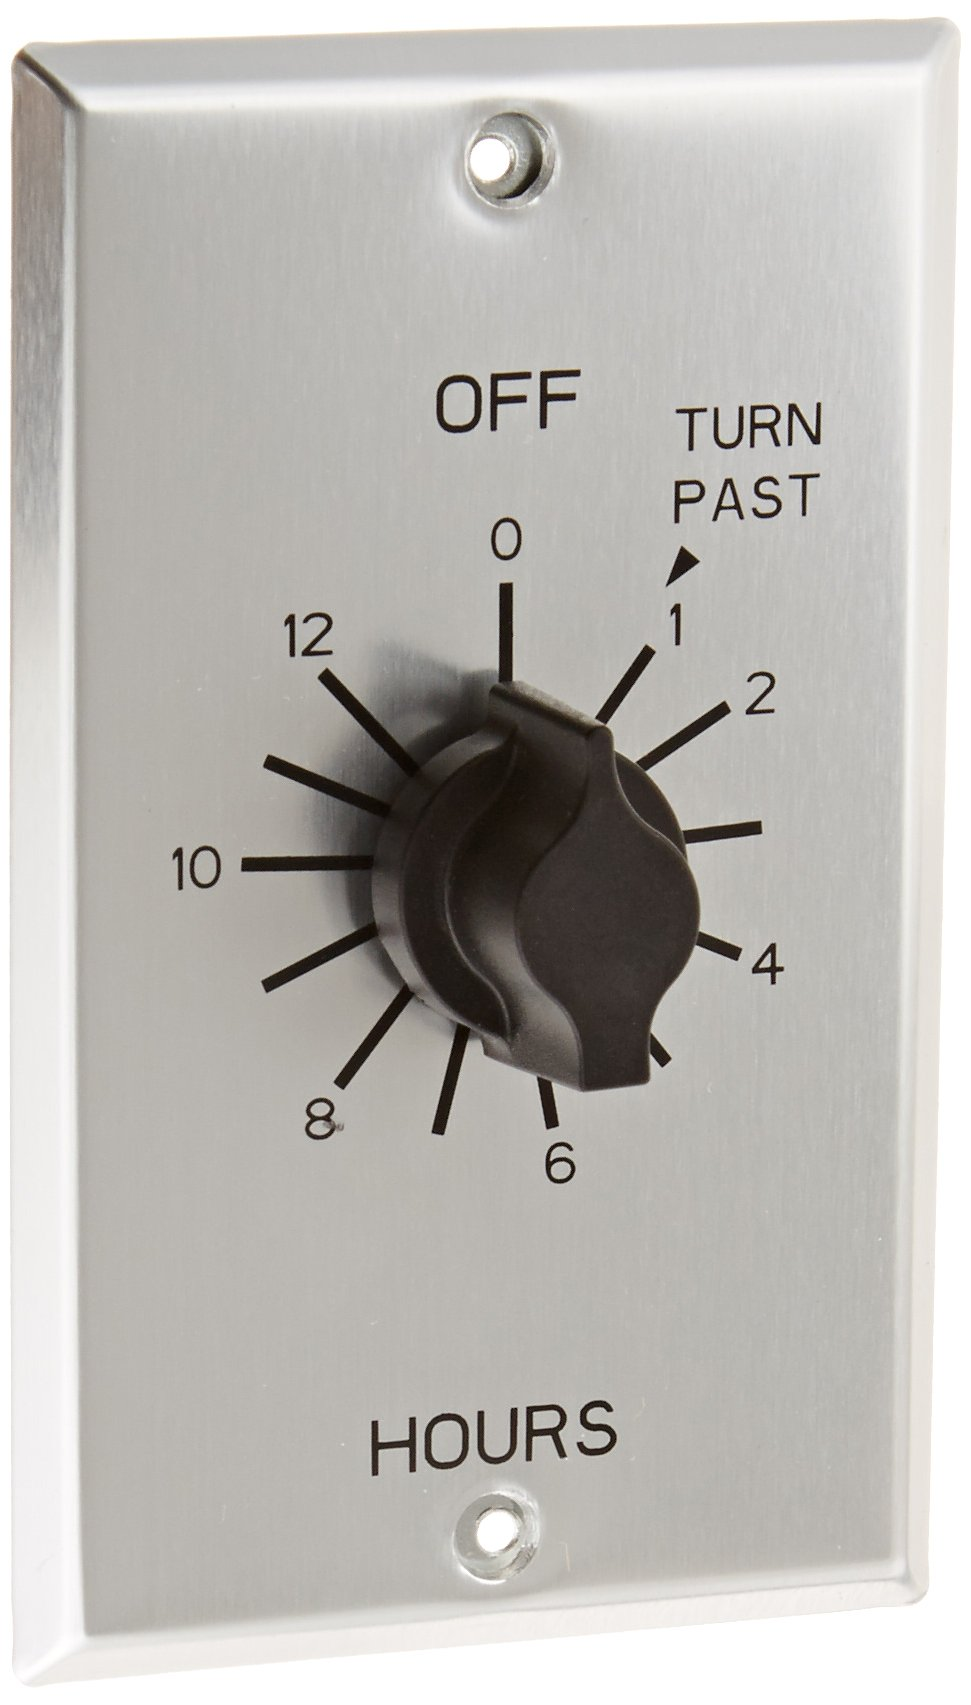 C Series Commercial Style Sringwound Auto Off In-Wall Time Switch, 12 Hours Timer Length, SPST Switch Type